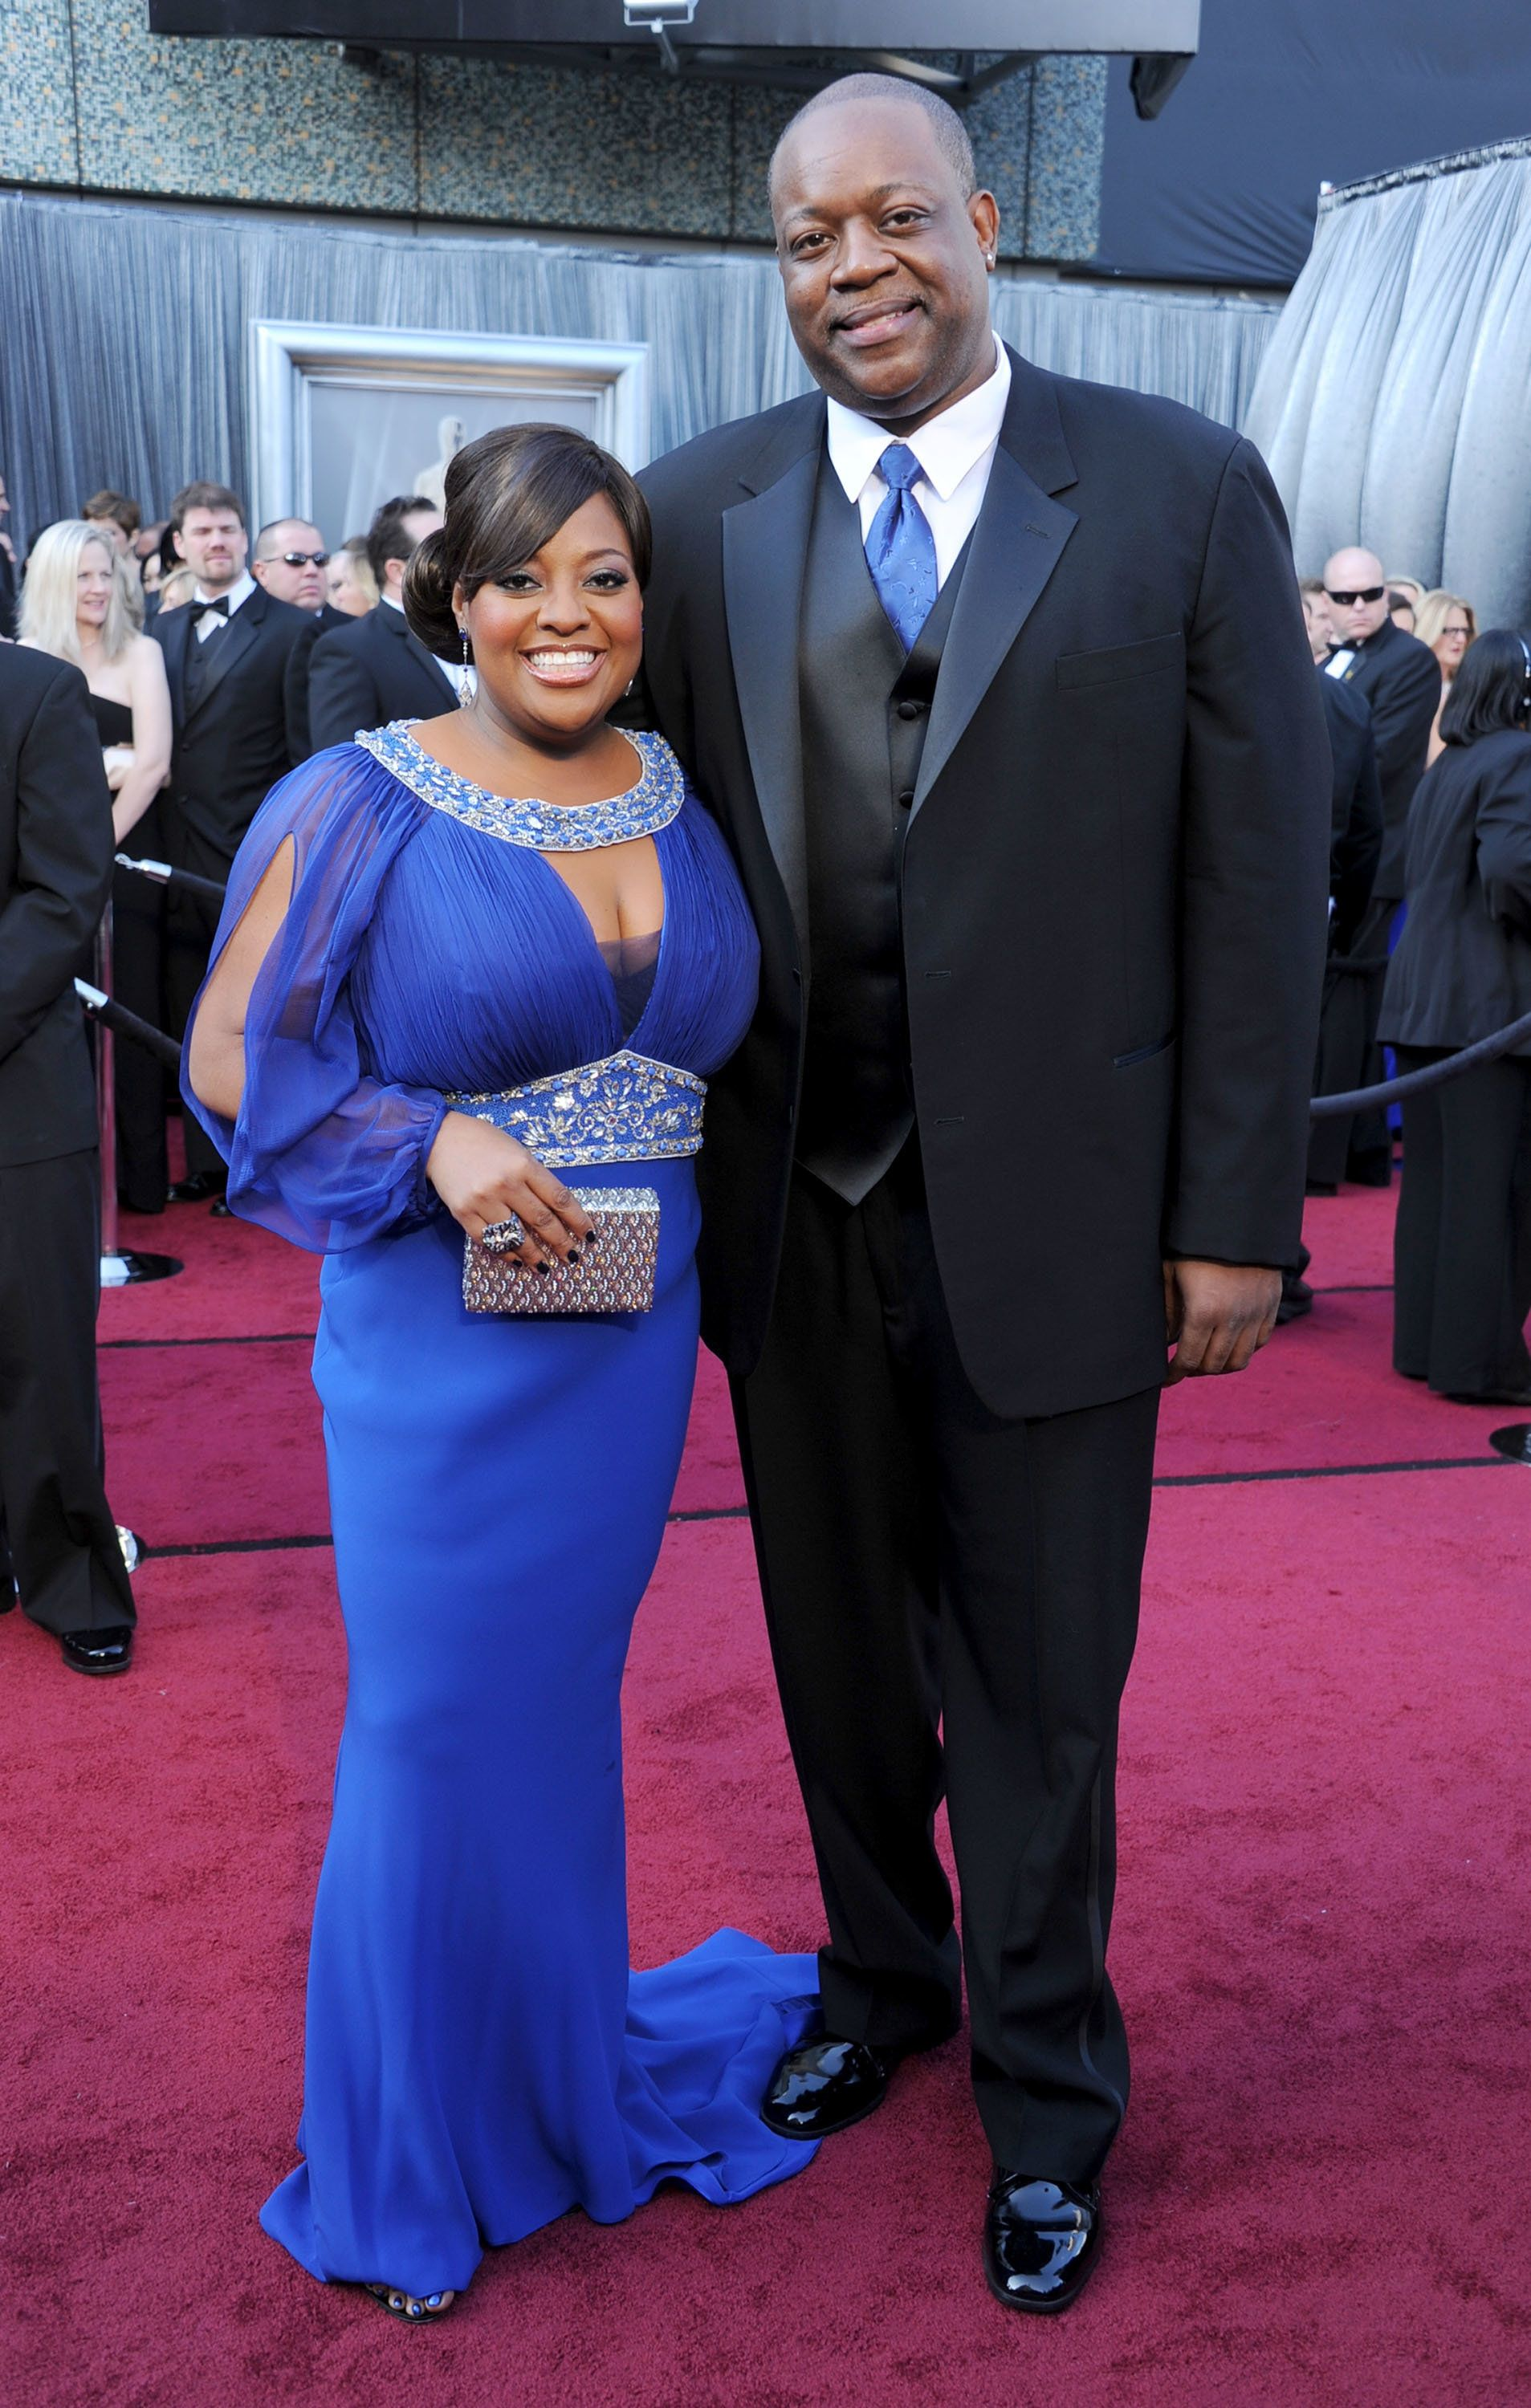 HOLLYWOOD, CA - FEBRUARY 26:  Actress Sherri Shepherd and Lamar Sally  arrive at the 84th Annual Academy Awards at Hollywood & Highland Center on February 26, 2012 in Hollywood, California.  (Photo by Gregg DeGuire/FilmMagic)